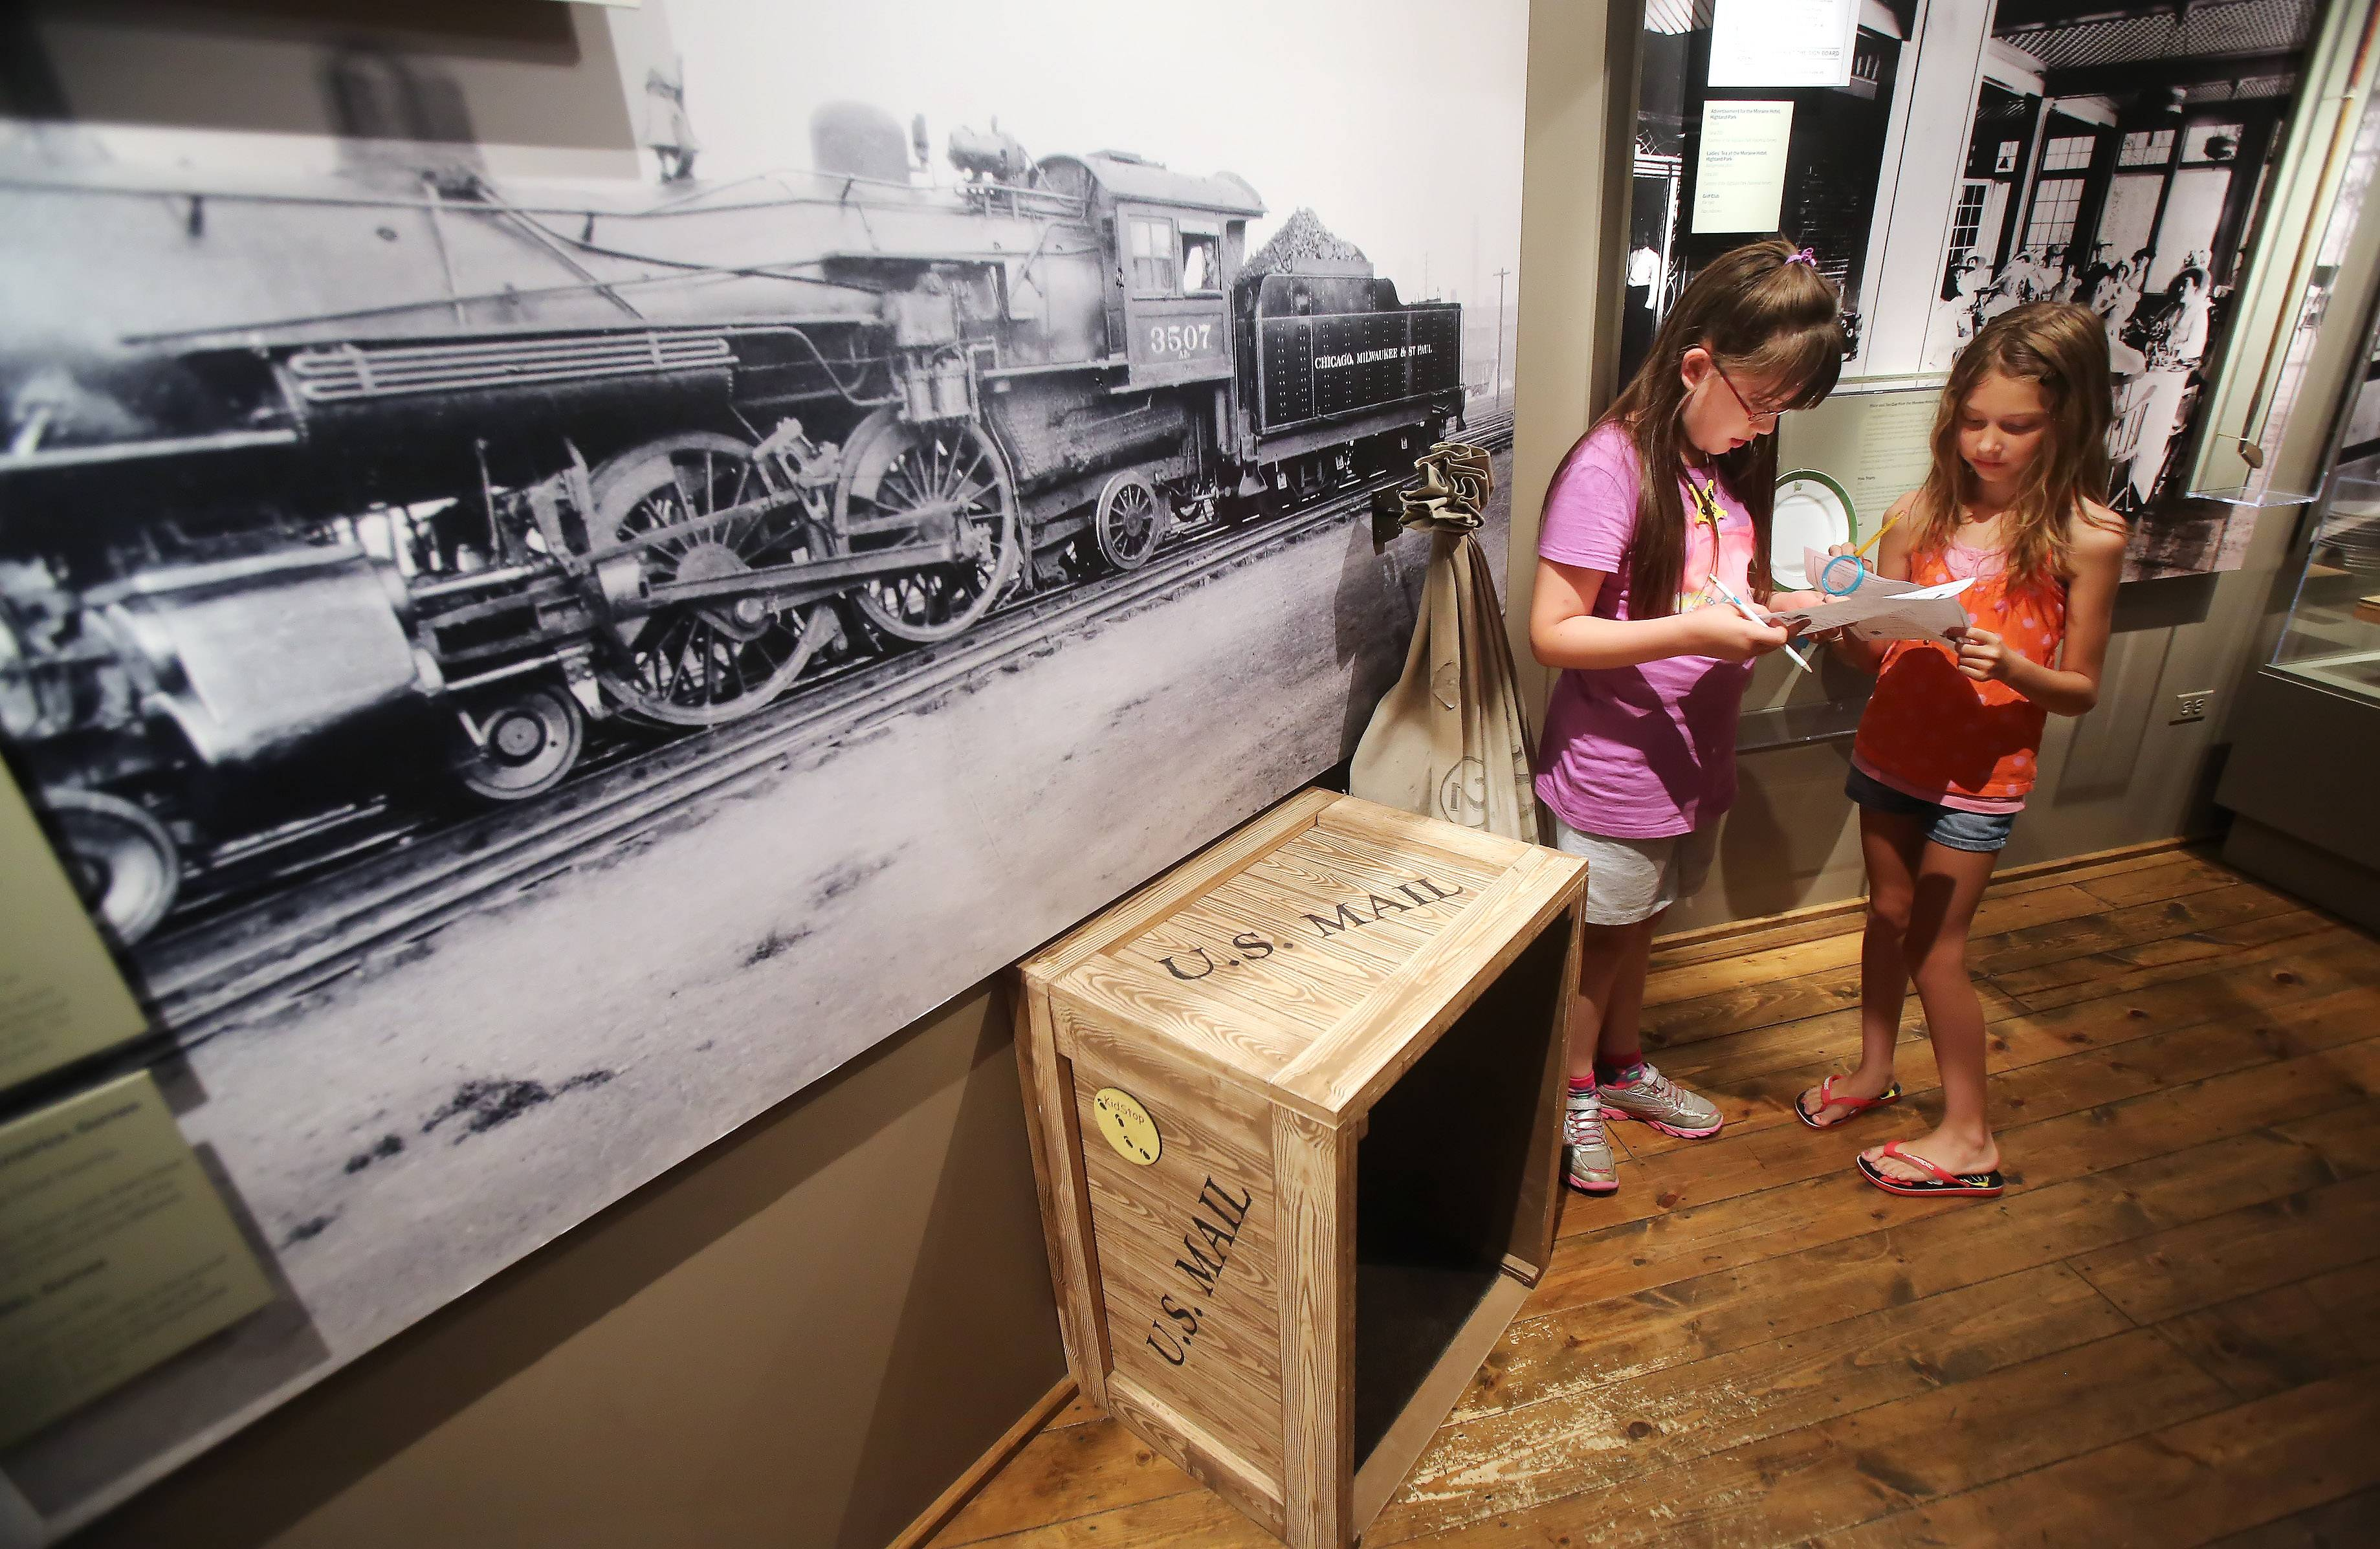 Ava McQuain, left, and Abby Ray, both 9 and from Mundelein, use their new detective skills Monday during a scavenger hunt at the Lake County Discovery Museum near Wauconda. Their mission, as part of the Lake County Forest Preserve District's History Detectives day camp, was to solve the biggest train robbery in county history, the 1924 Rondout Robbery.